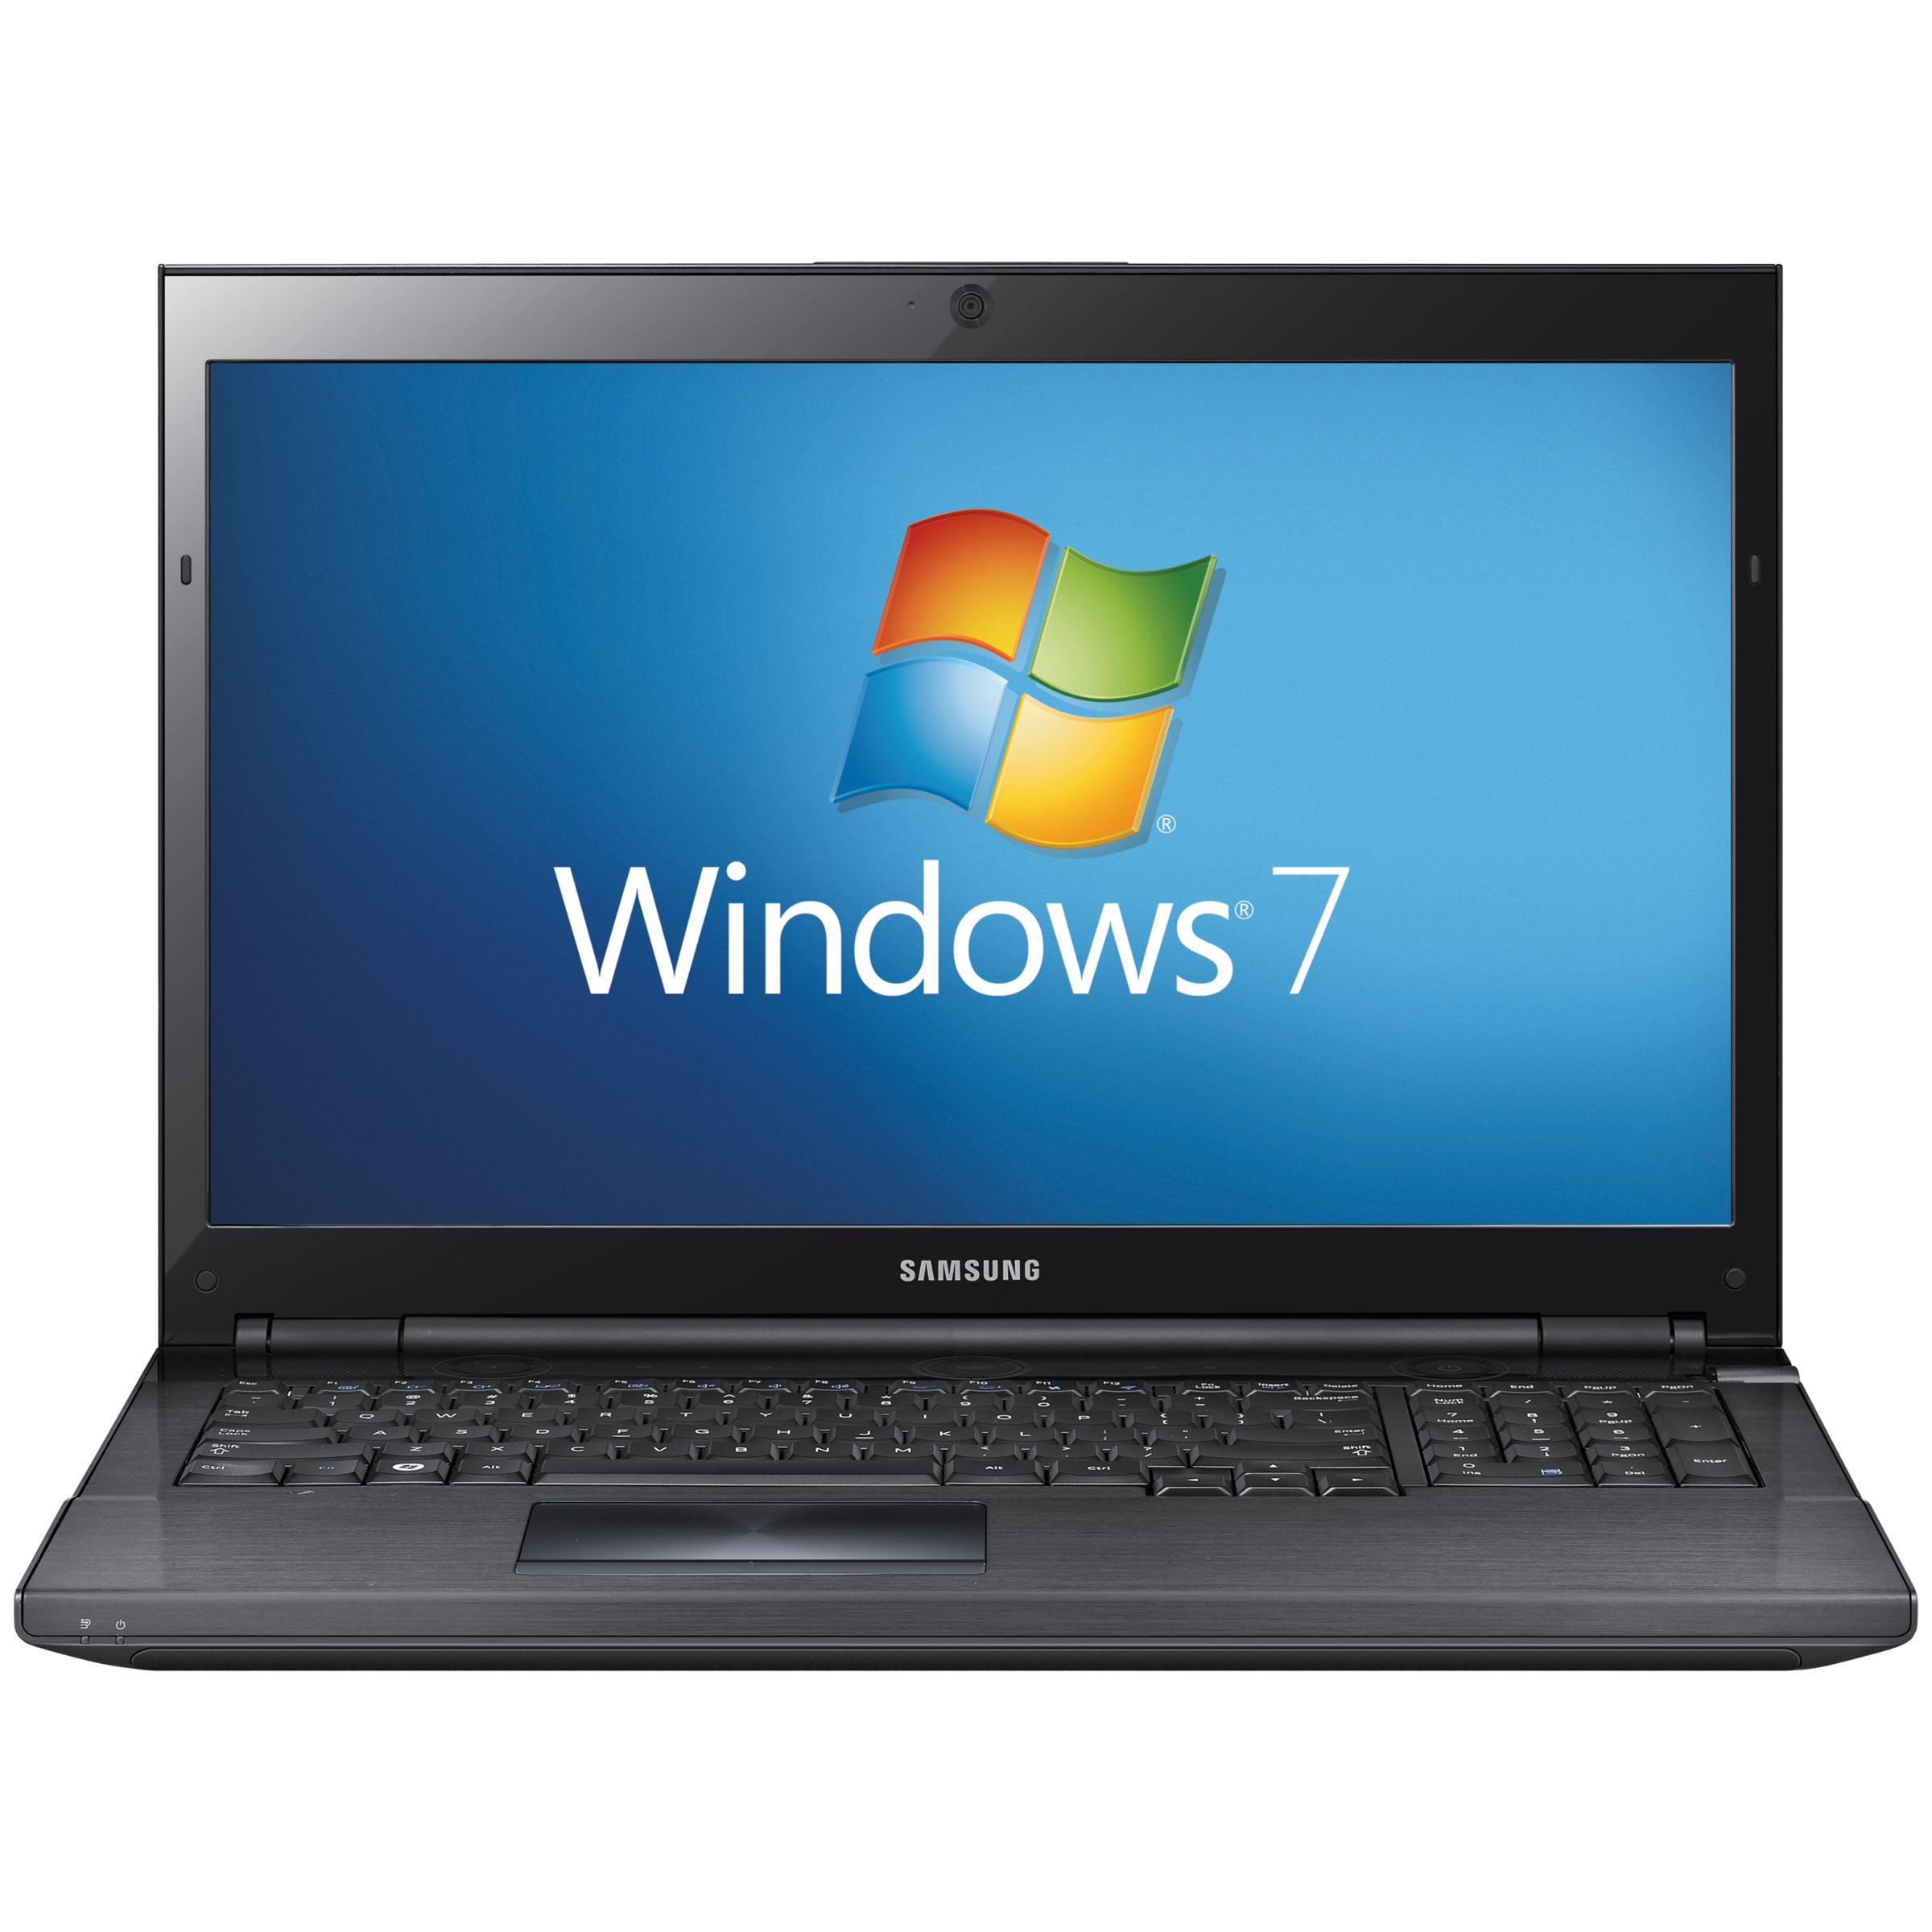 "Samsung 700g7c-s01 Laptop, Intel Core I7, 2.3ghz, 16gb Ram, 1.5tb+8 Ssd, Blu-ray With 17.3"", Black"